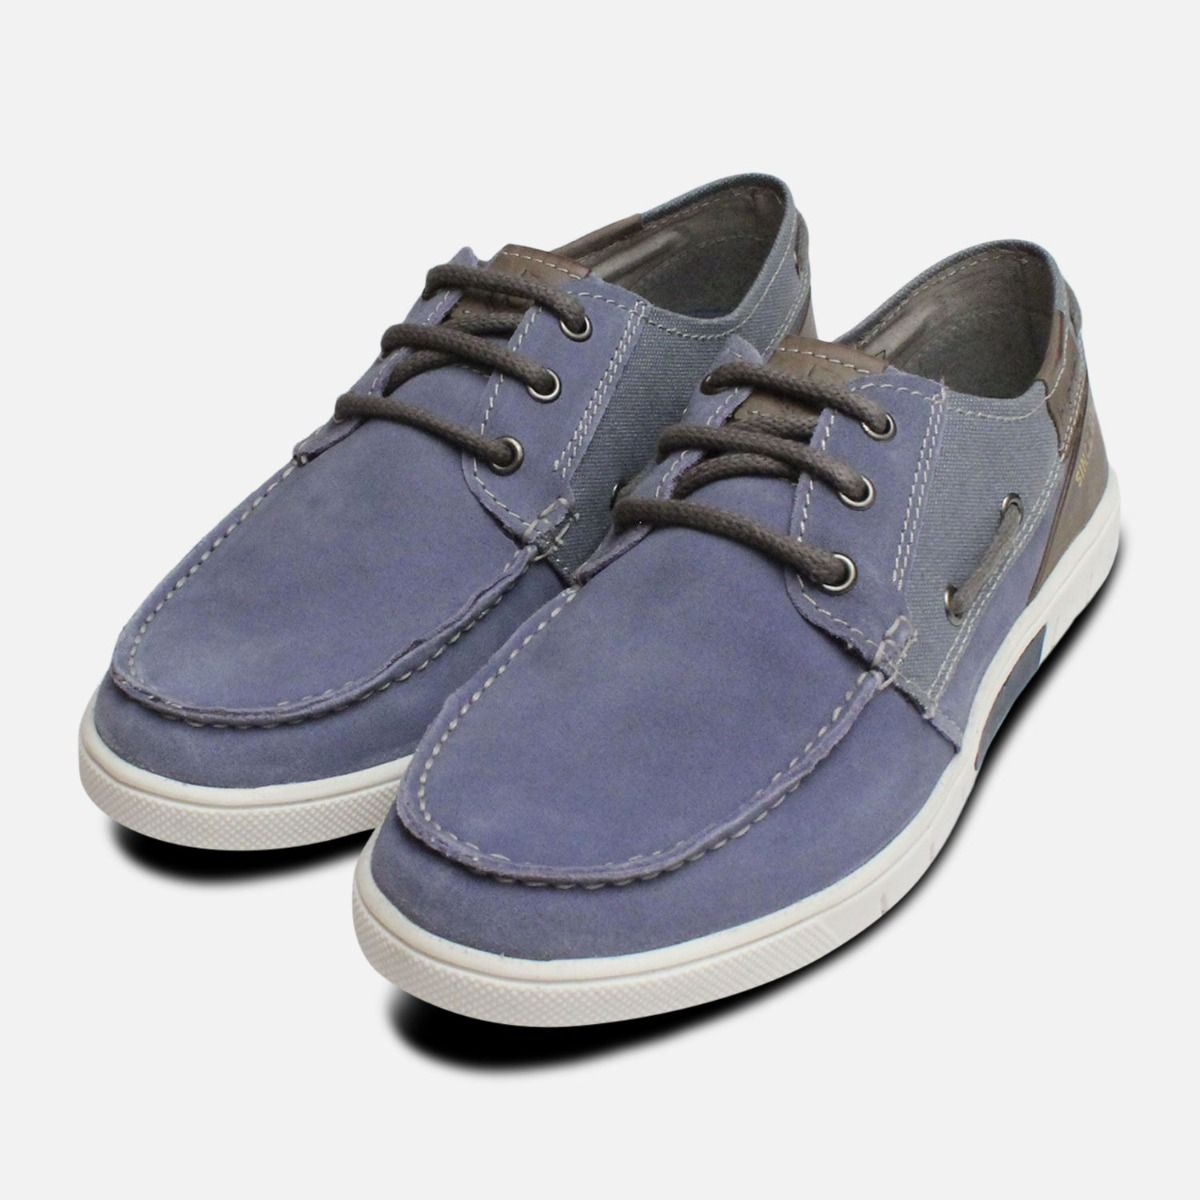 31595490bb8b4 Denim Blue Suede Boat Shoe by Bugatti